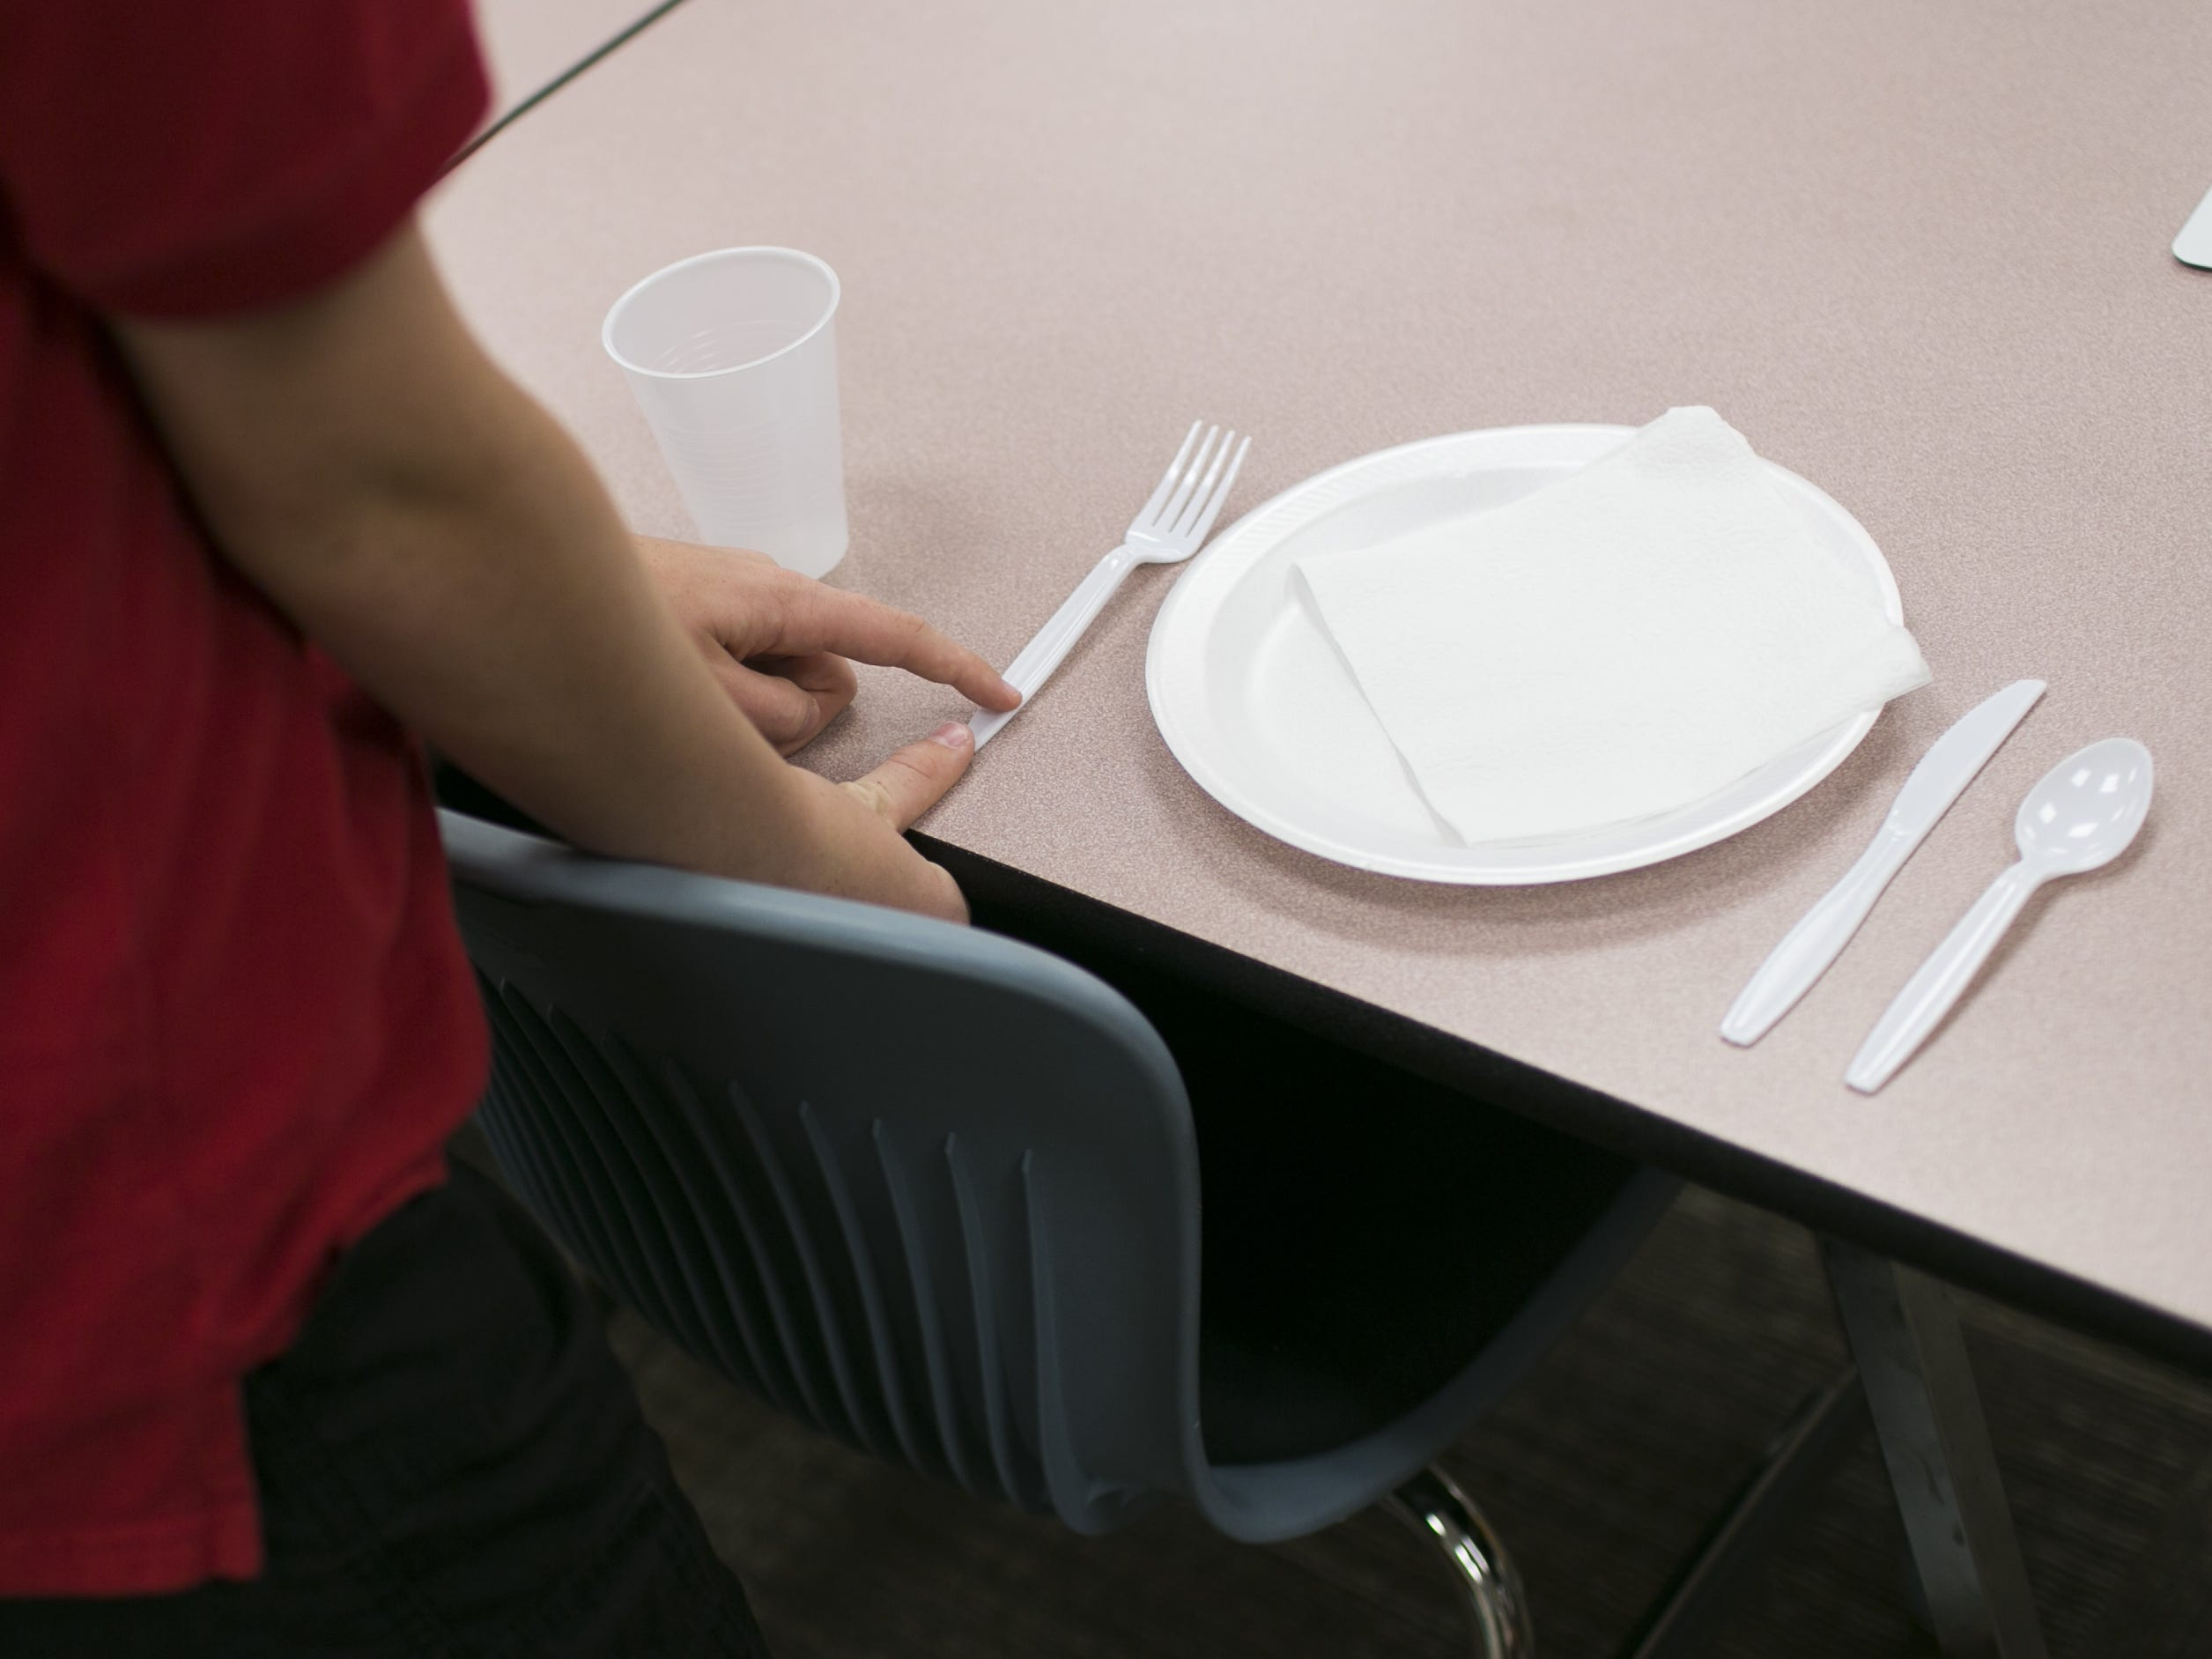 A student in the class moves his silverware an inch from the table's edge during an exercise in Scottsdale on July 20, 2018.  SueAnn Brown started the  program with the aim to teach kids, adults and companies on proper manners and social etiquette.